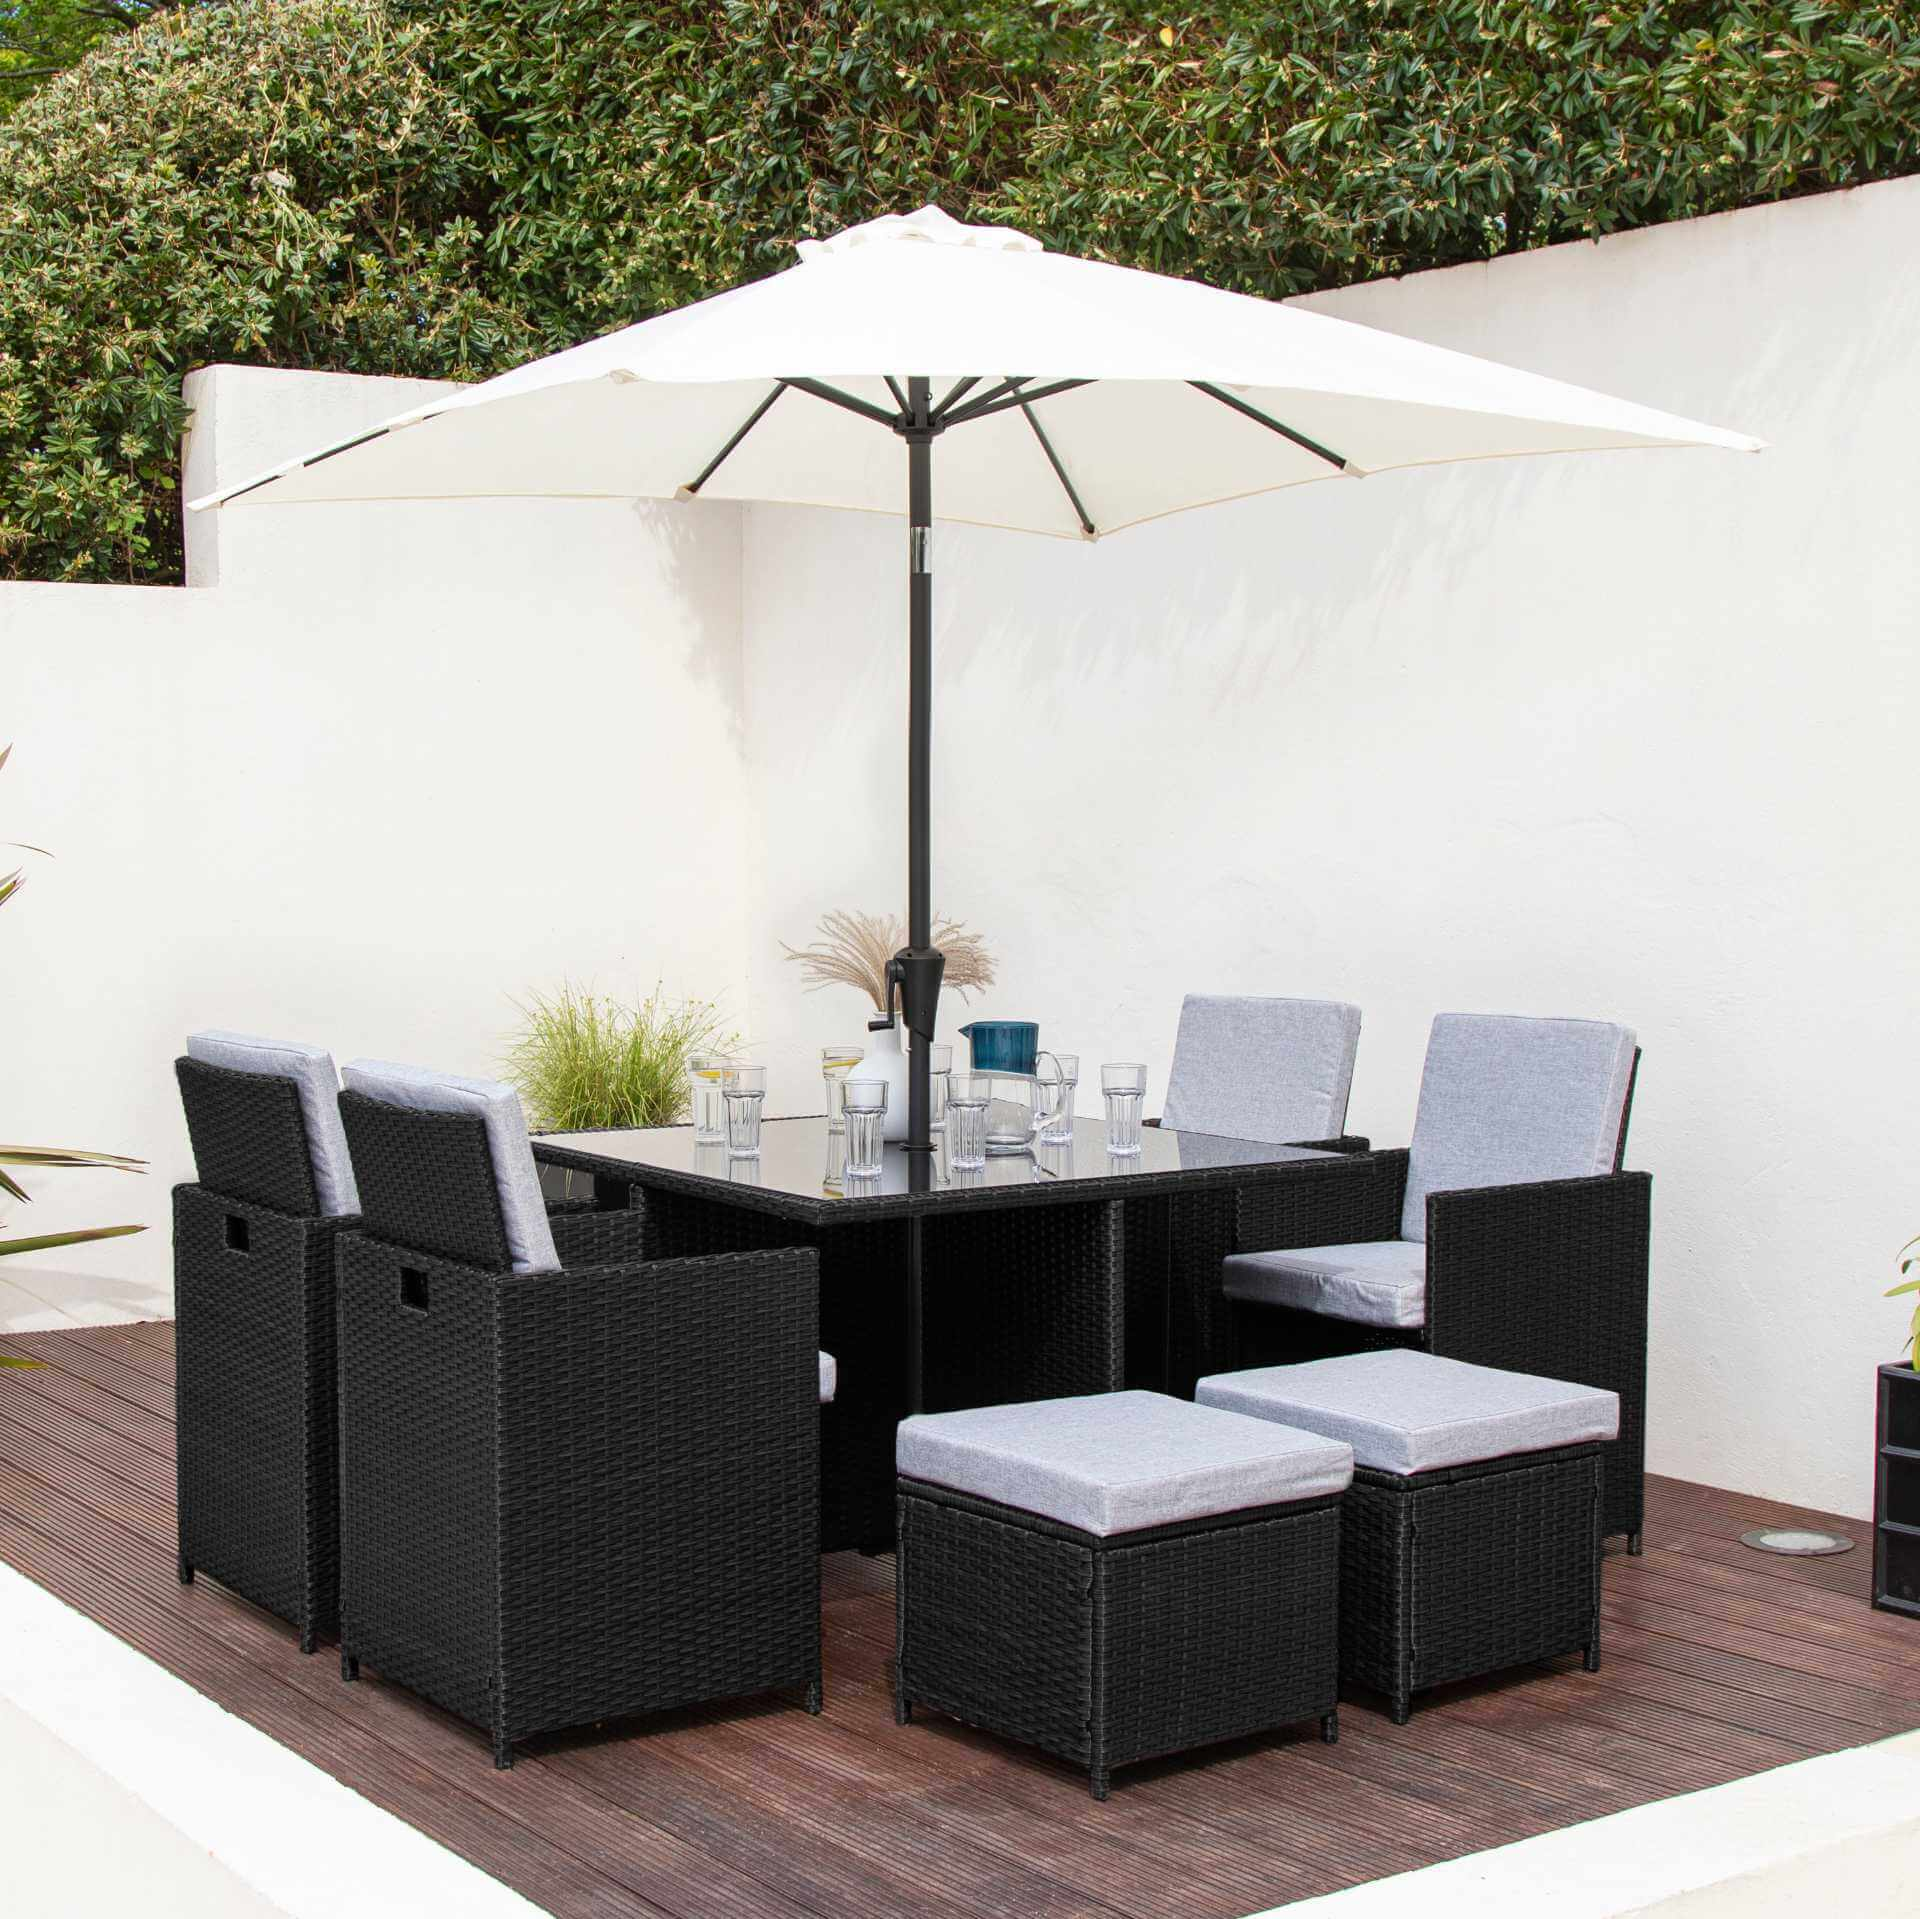 8 Seater Rattan Cube Outdoor Dining Set with Parasol - Black Weave - Laura James